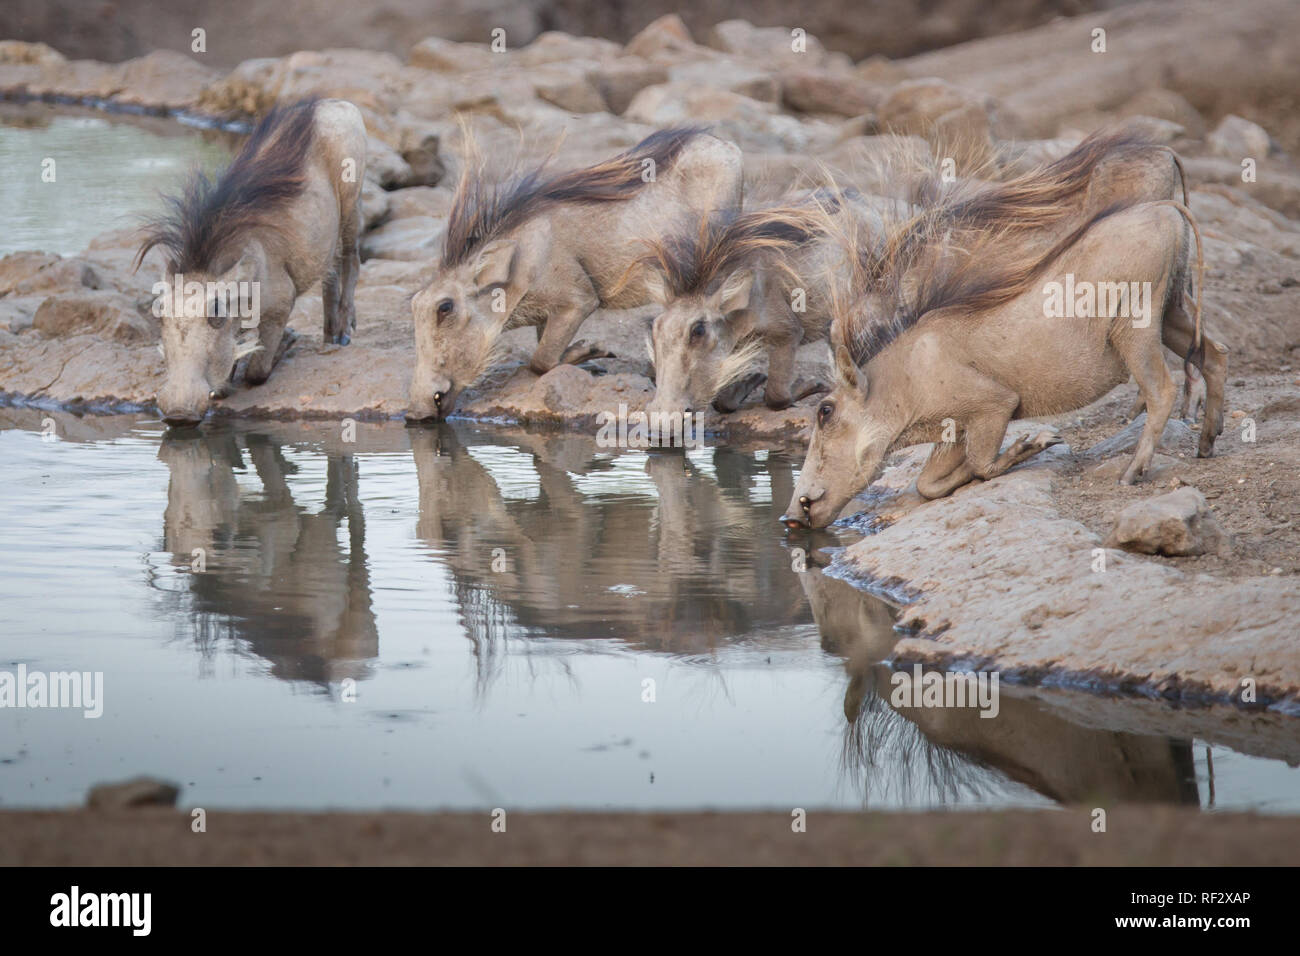 During the dry season, thirsty warthogs, Phacochoerus africanus, line up to drink from a waterhole in Majete Game Reserve in Malawi - Stock Image